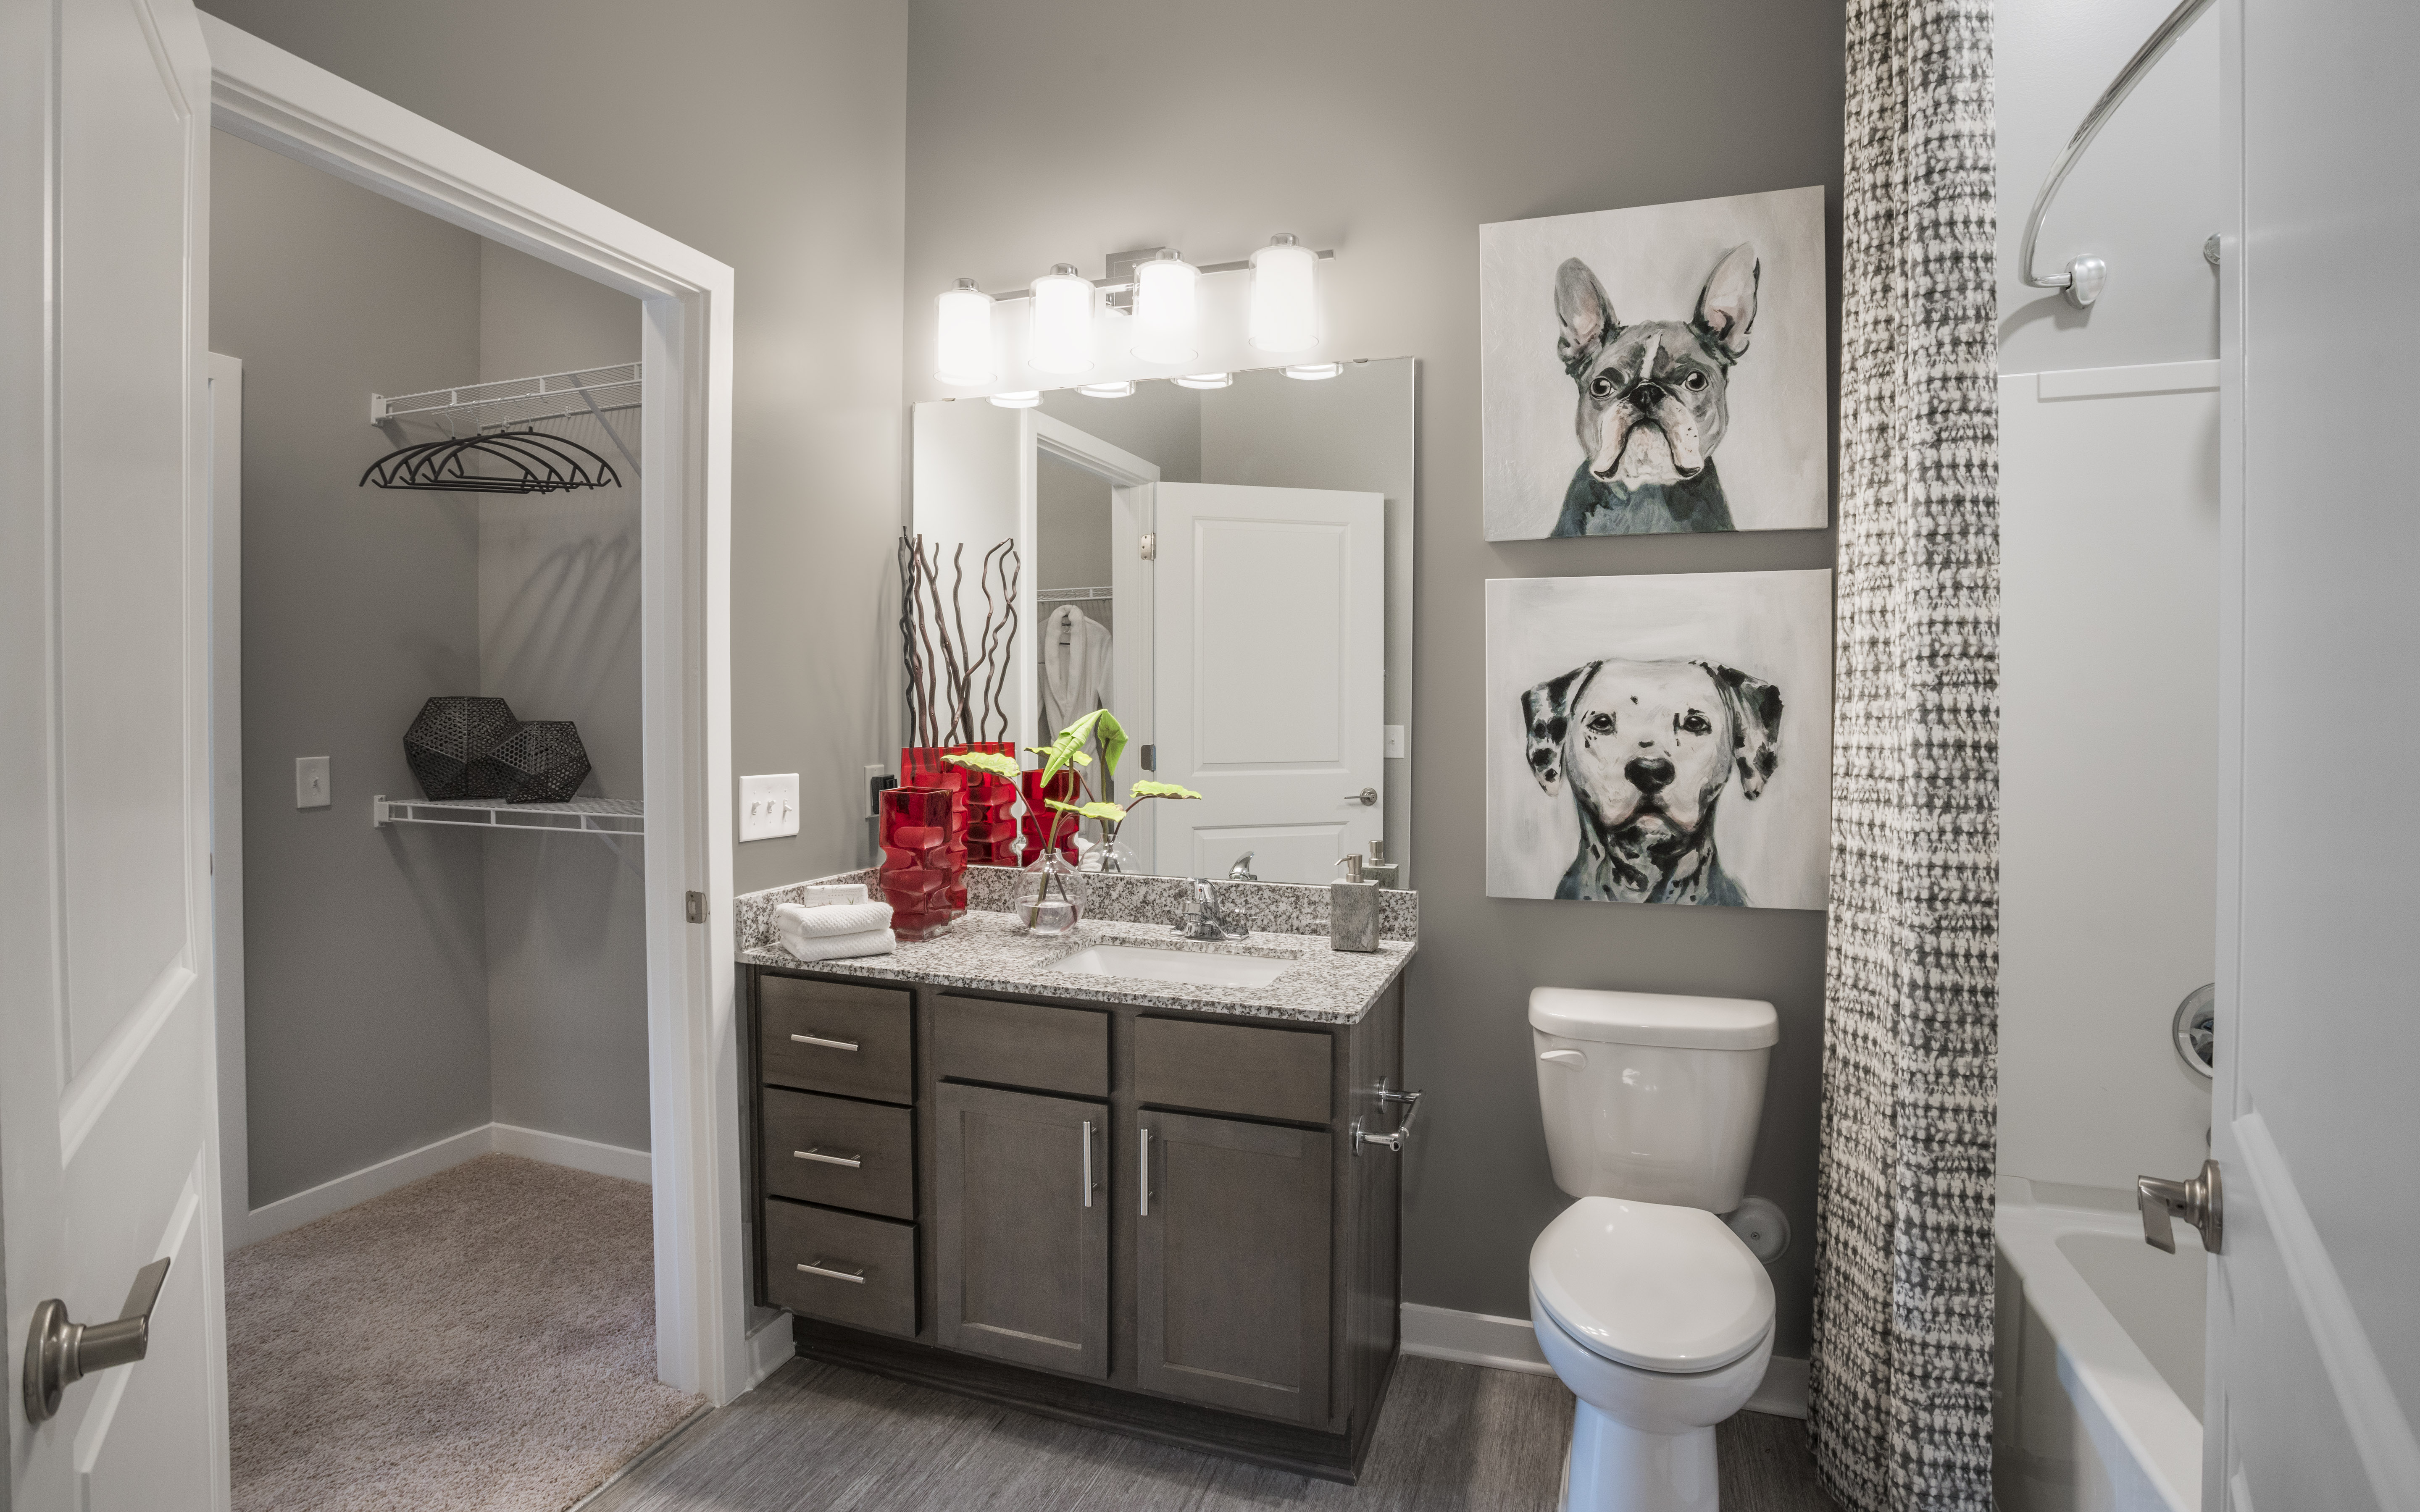 ALTA-CITIZEN-APARTMENTS-NEWPORT-MEWS-WV-MODEL-UNIT-BATHROOM-03